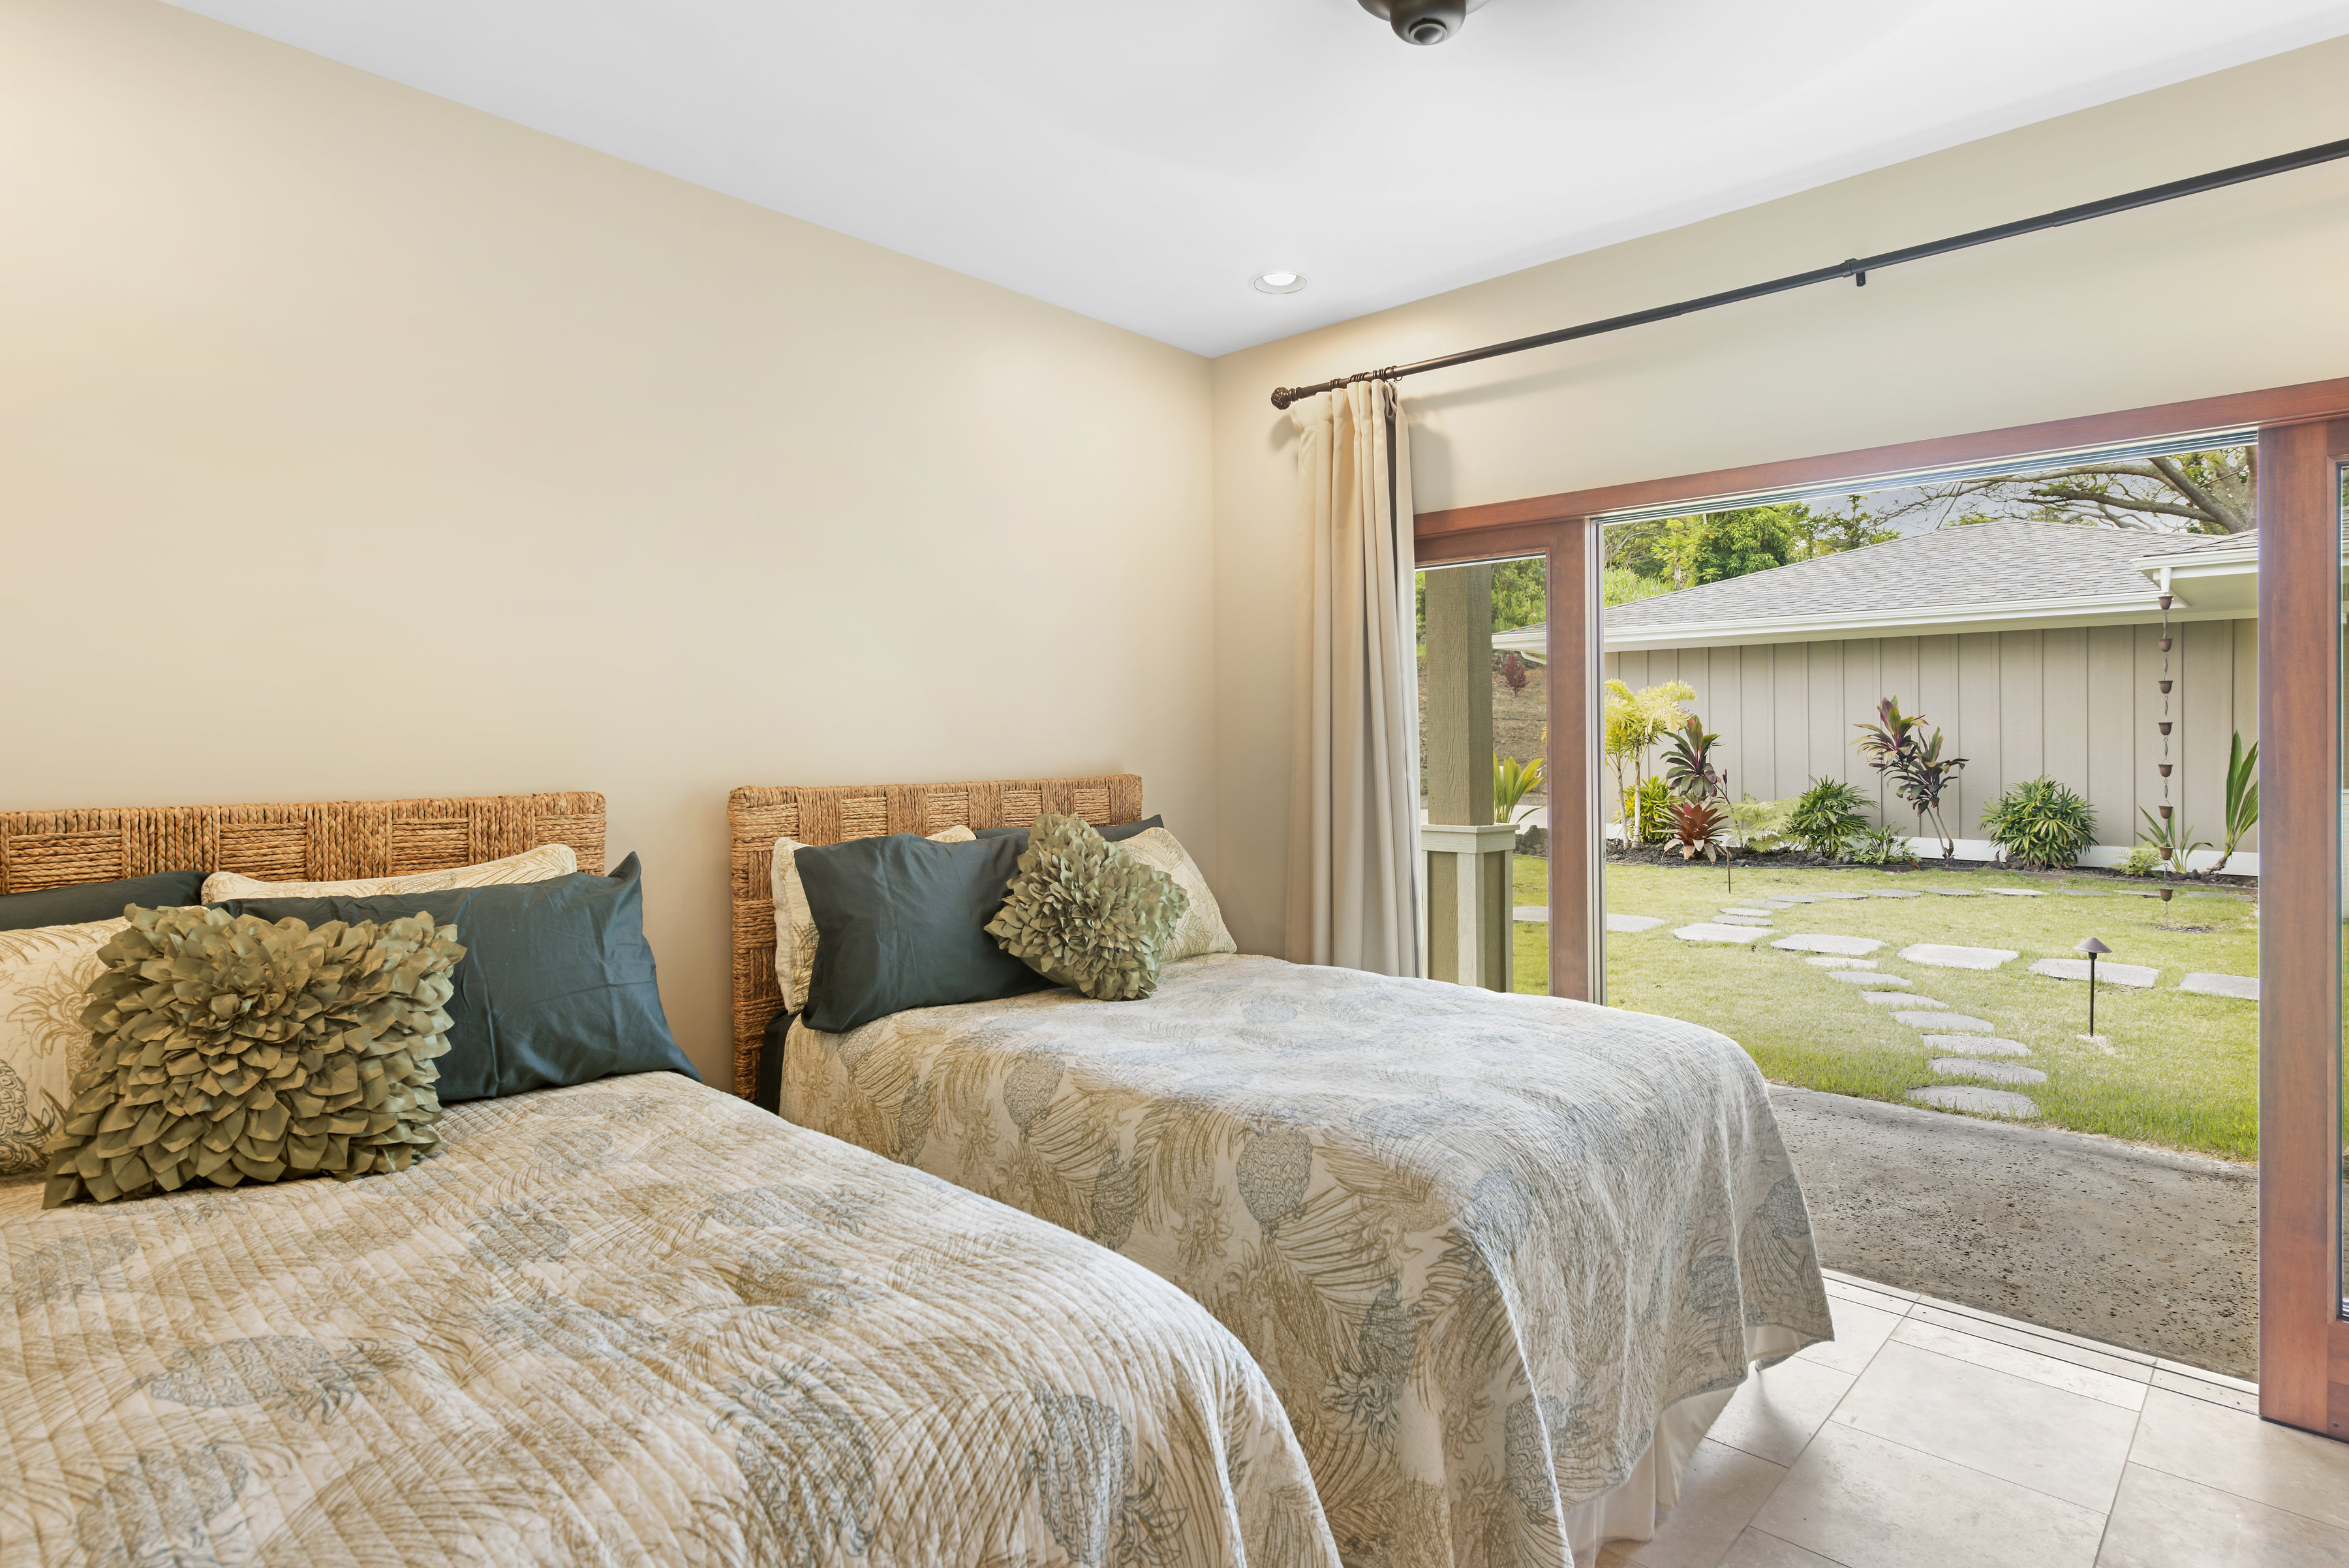 Bedroom 4 with two double beds and garden view.